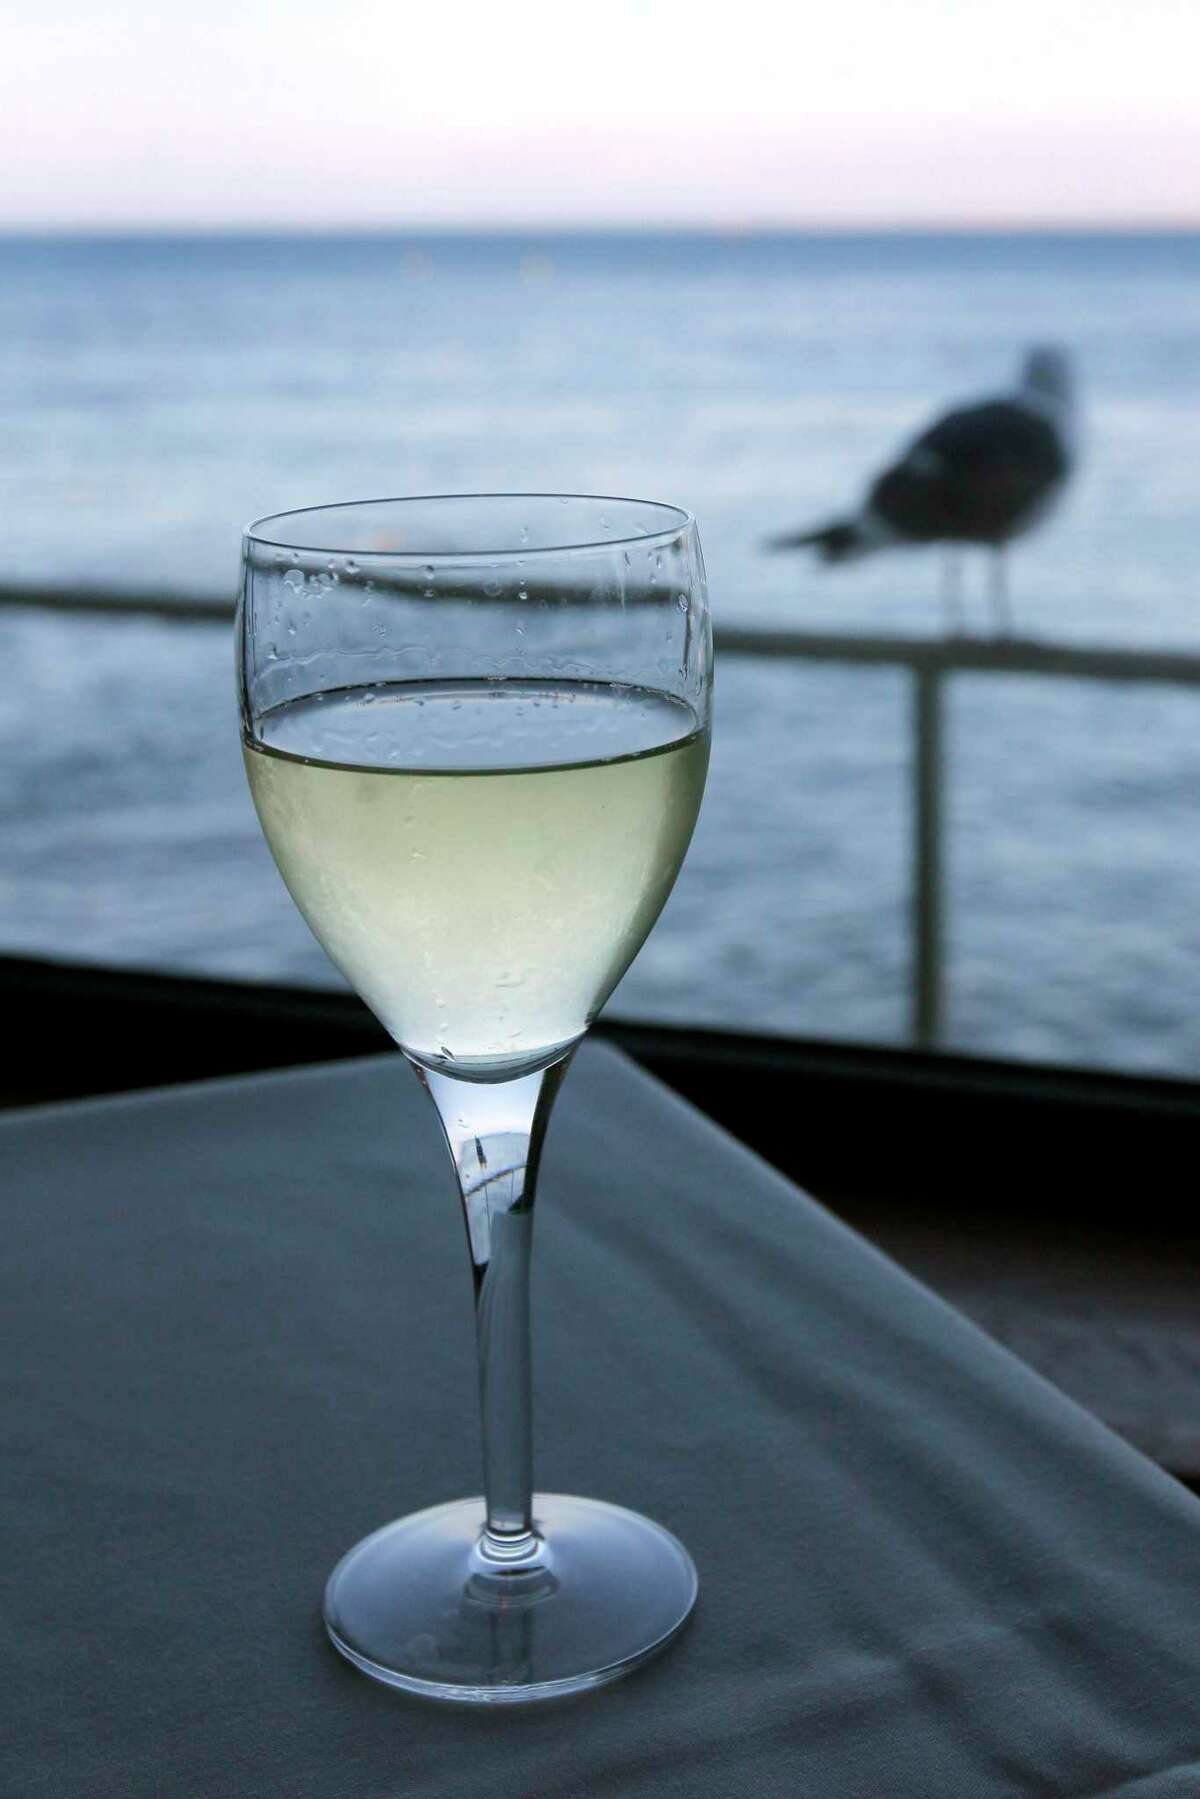 A glass of chilled white wine at the beach. Chilled wine makes a refreshing treat on Father's Day.